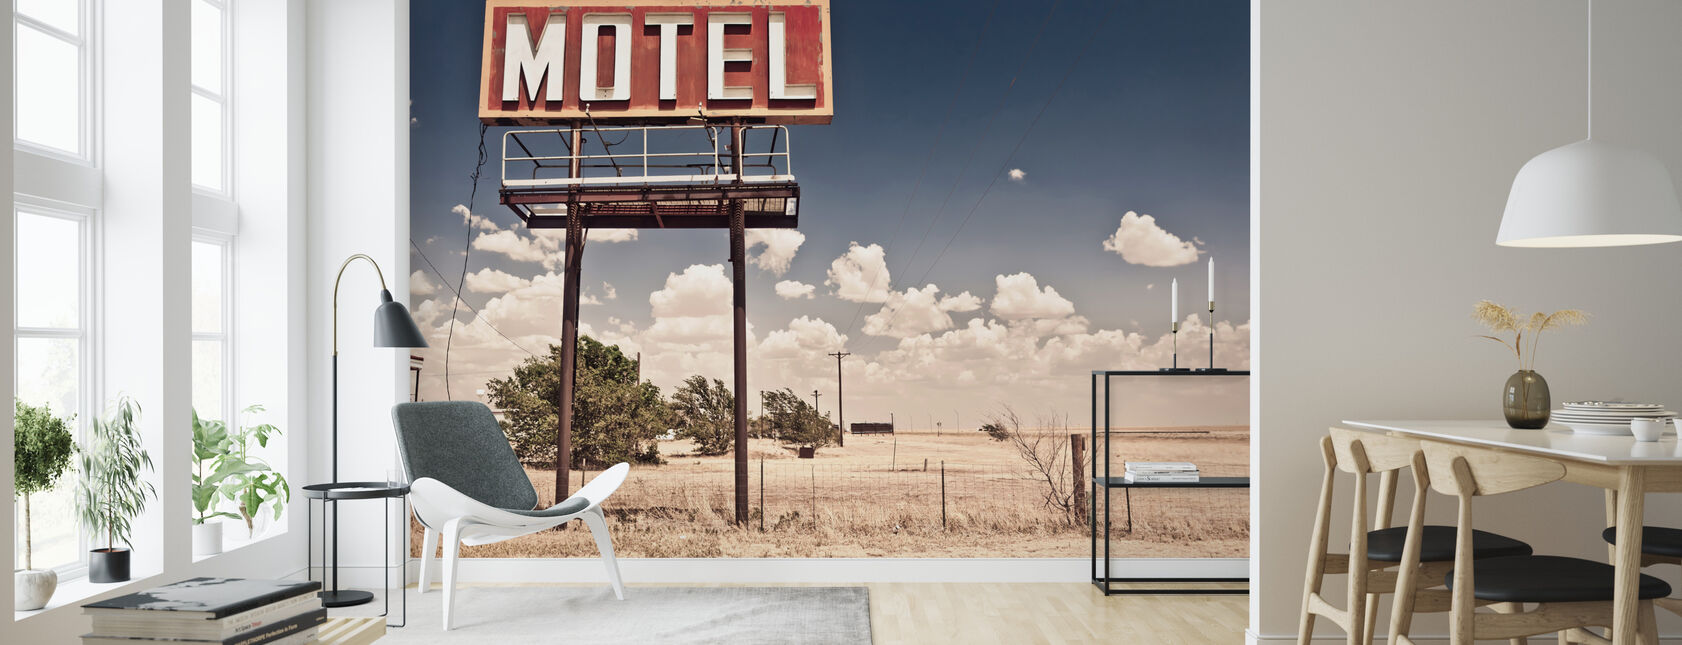 Old Motel Sign on Route 66 - Wallpaper - Living Room